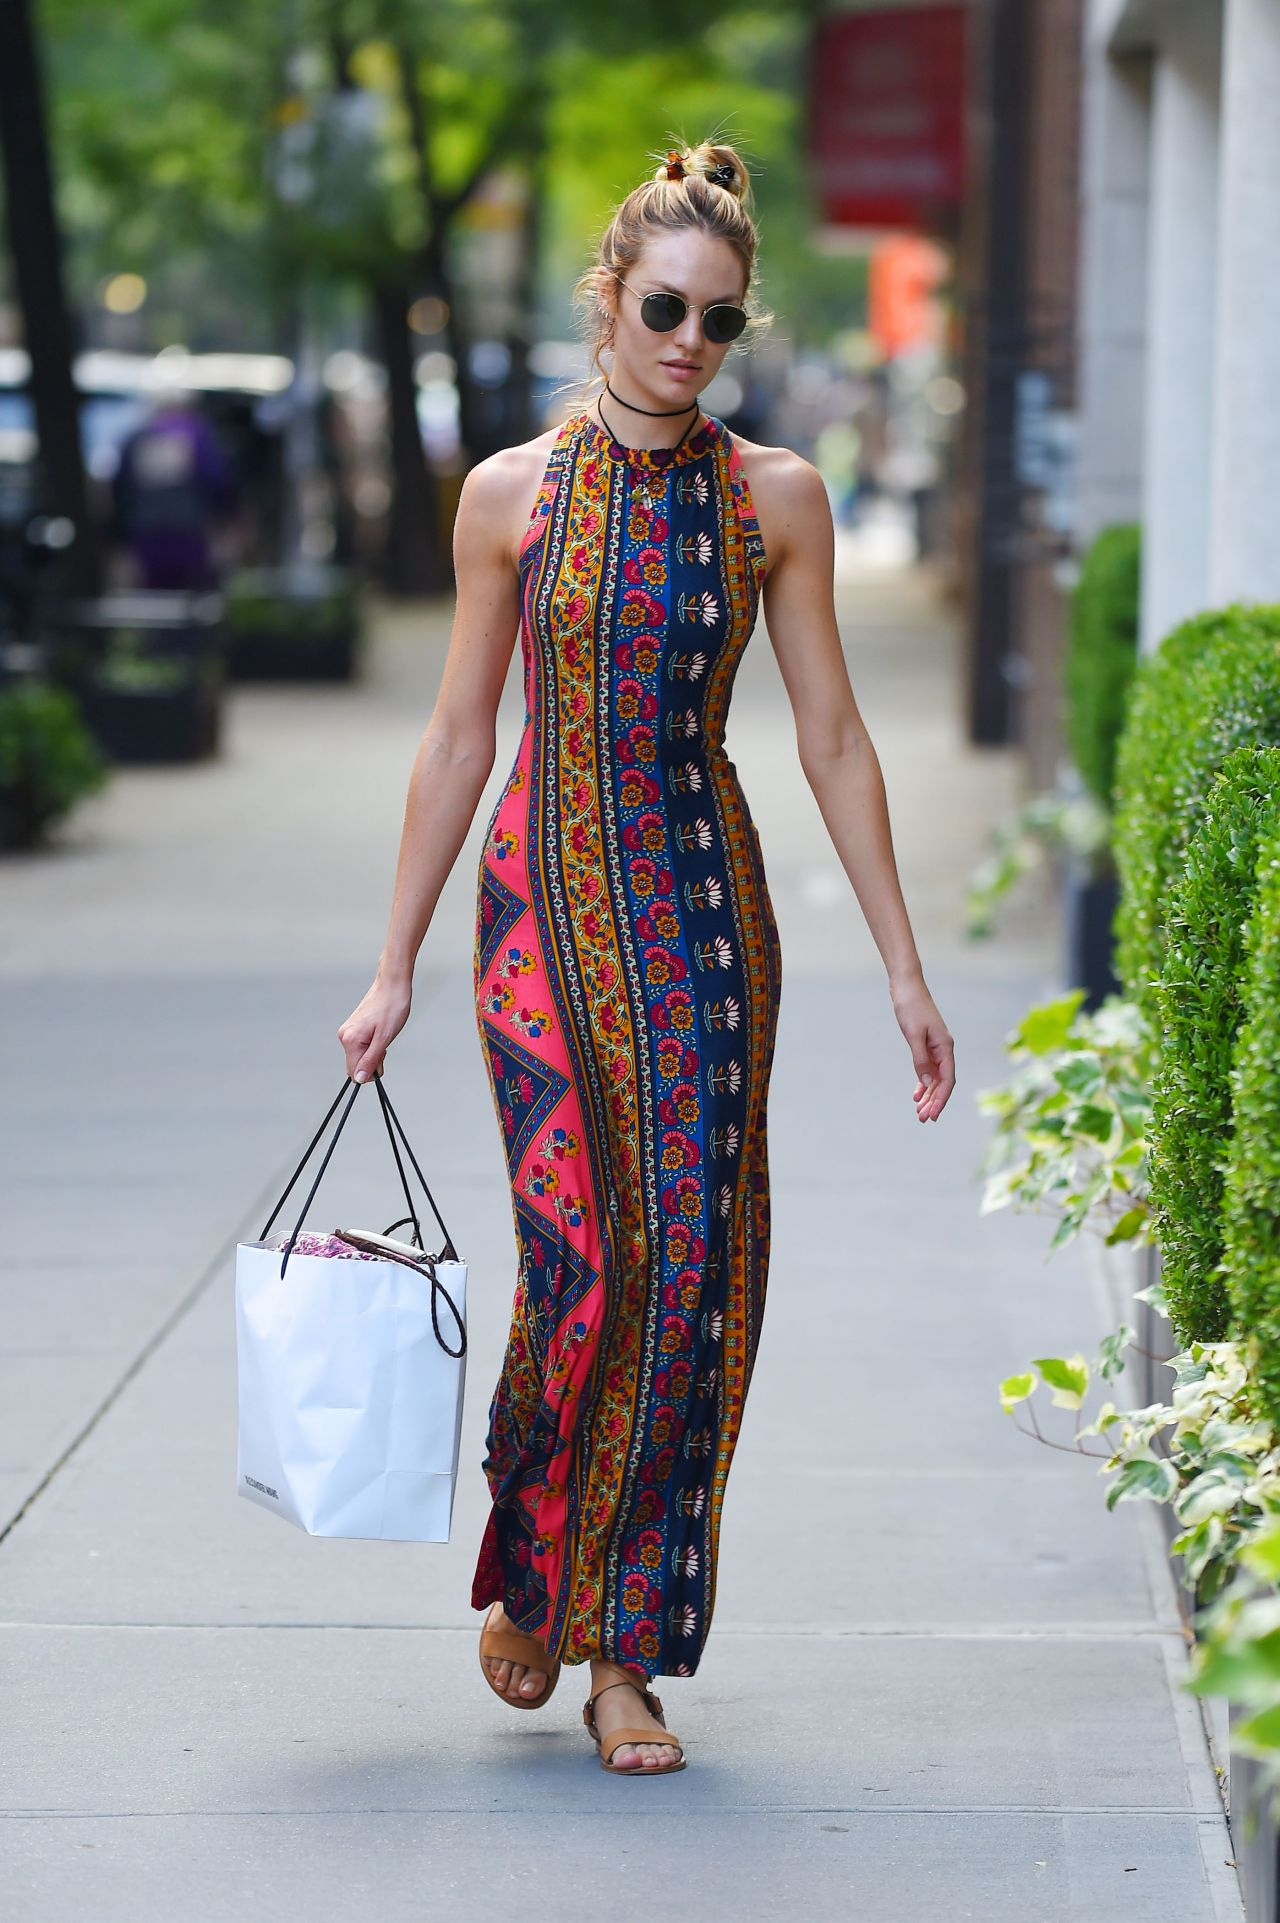 Candice Swanepoel In Stylish Summer Long Dress Out In Nyc